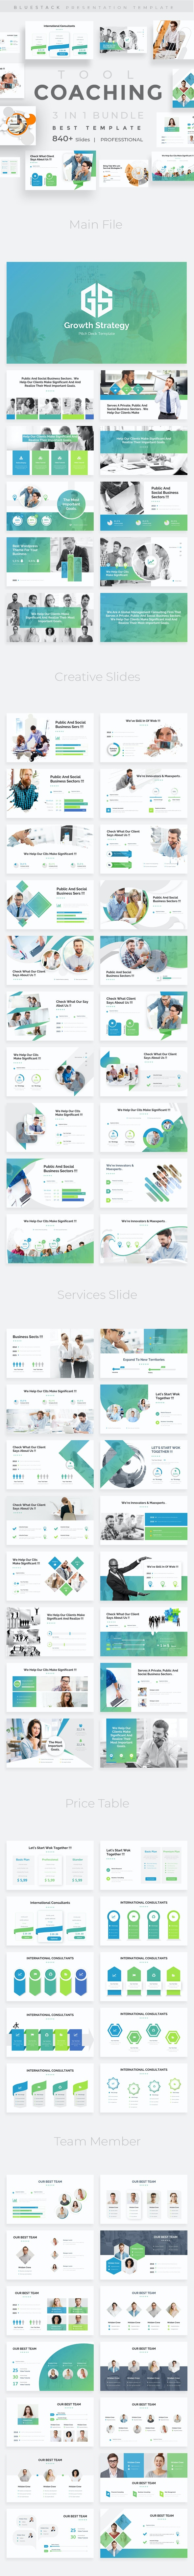 Coaching Tool 3 in 1 Pitch Deck Bundle Google Slide Template - Google Slides Presentation Templates